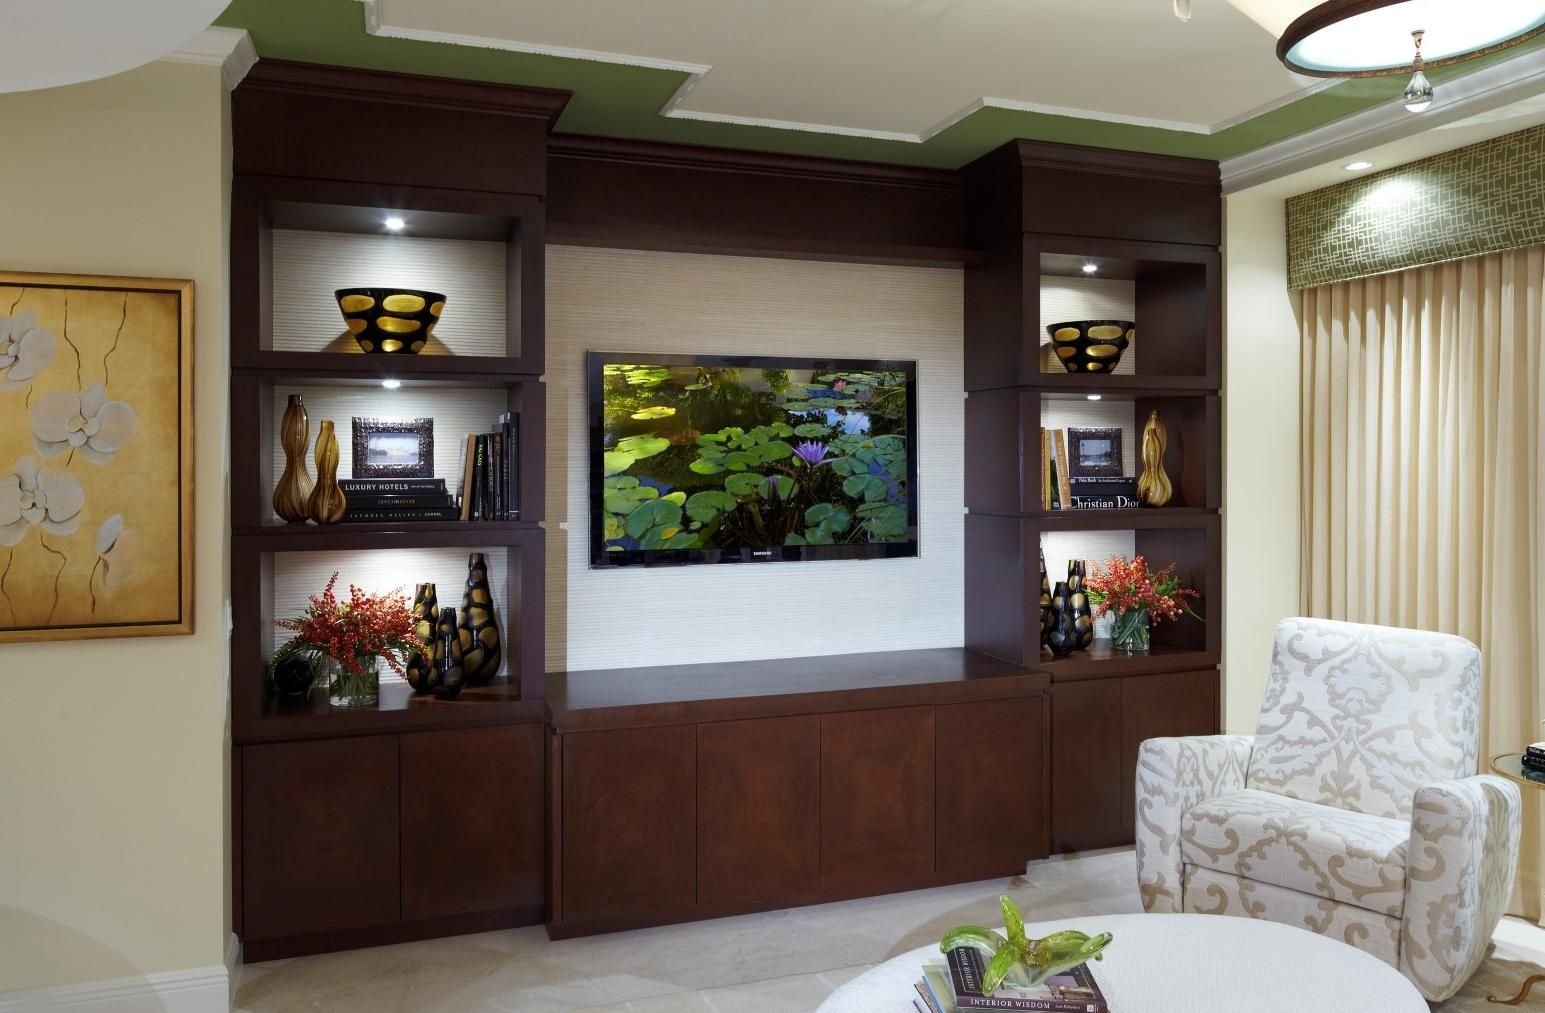 Wall Unit Furniture Living Room living room entertainment center ideas - google search | ideas for